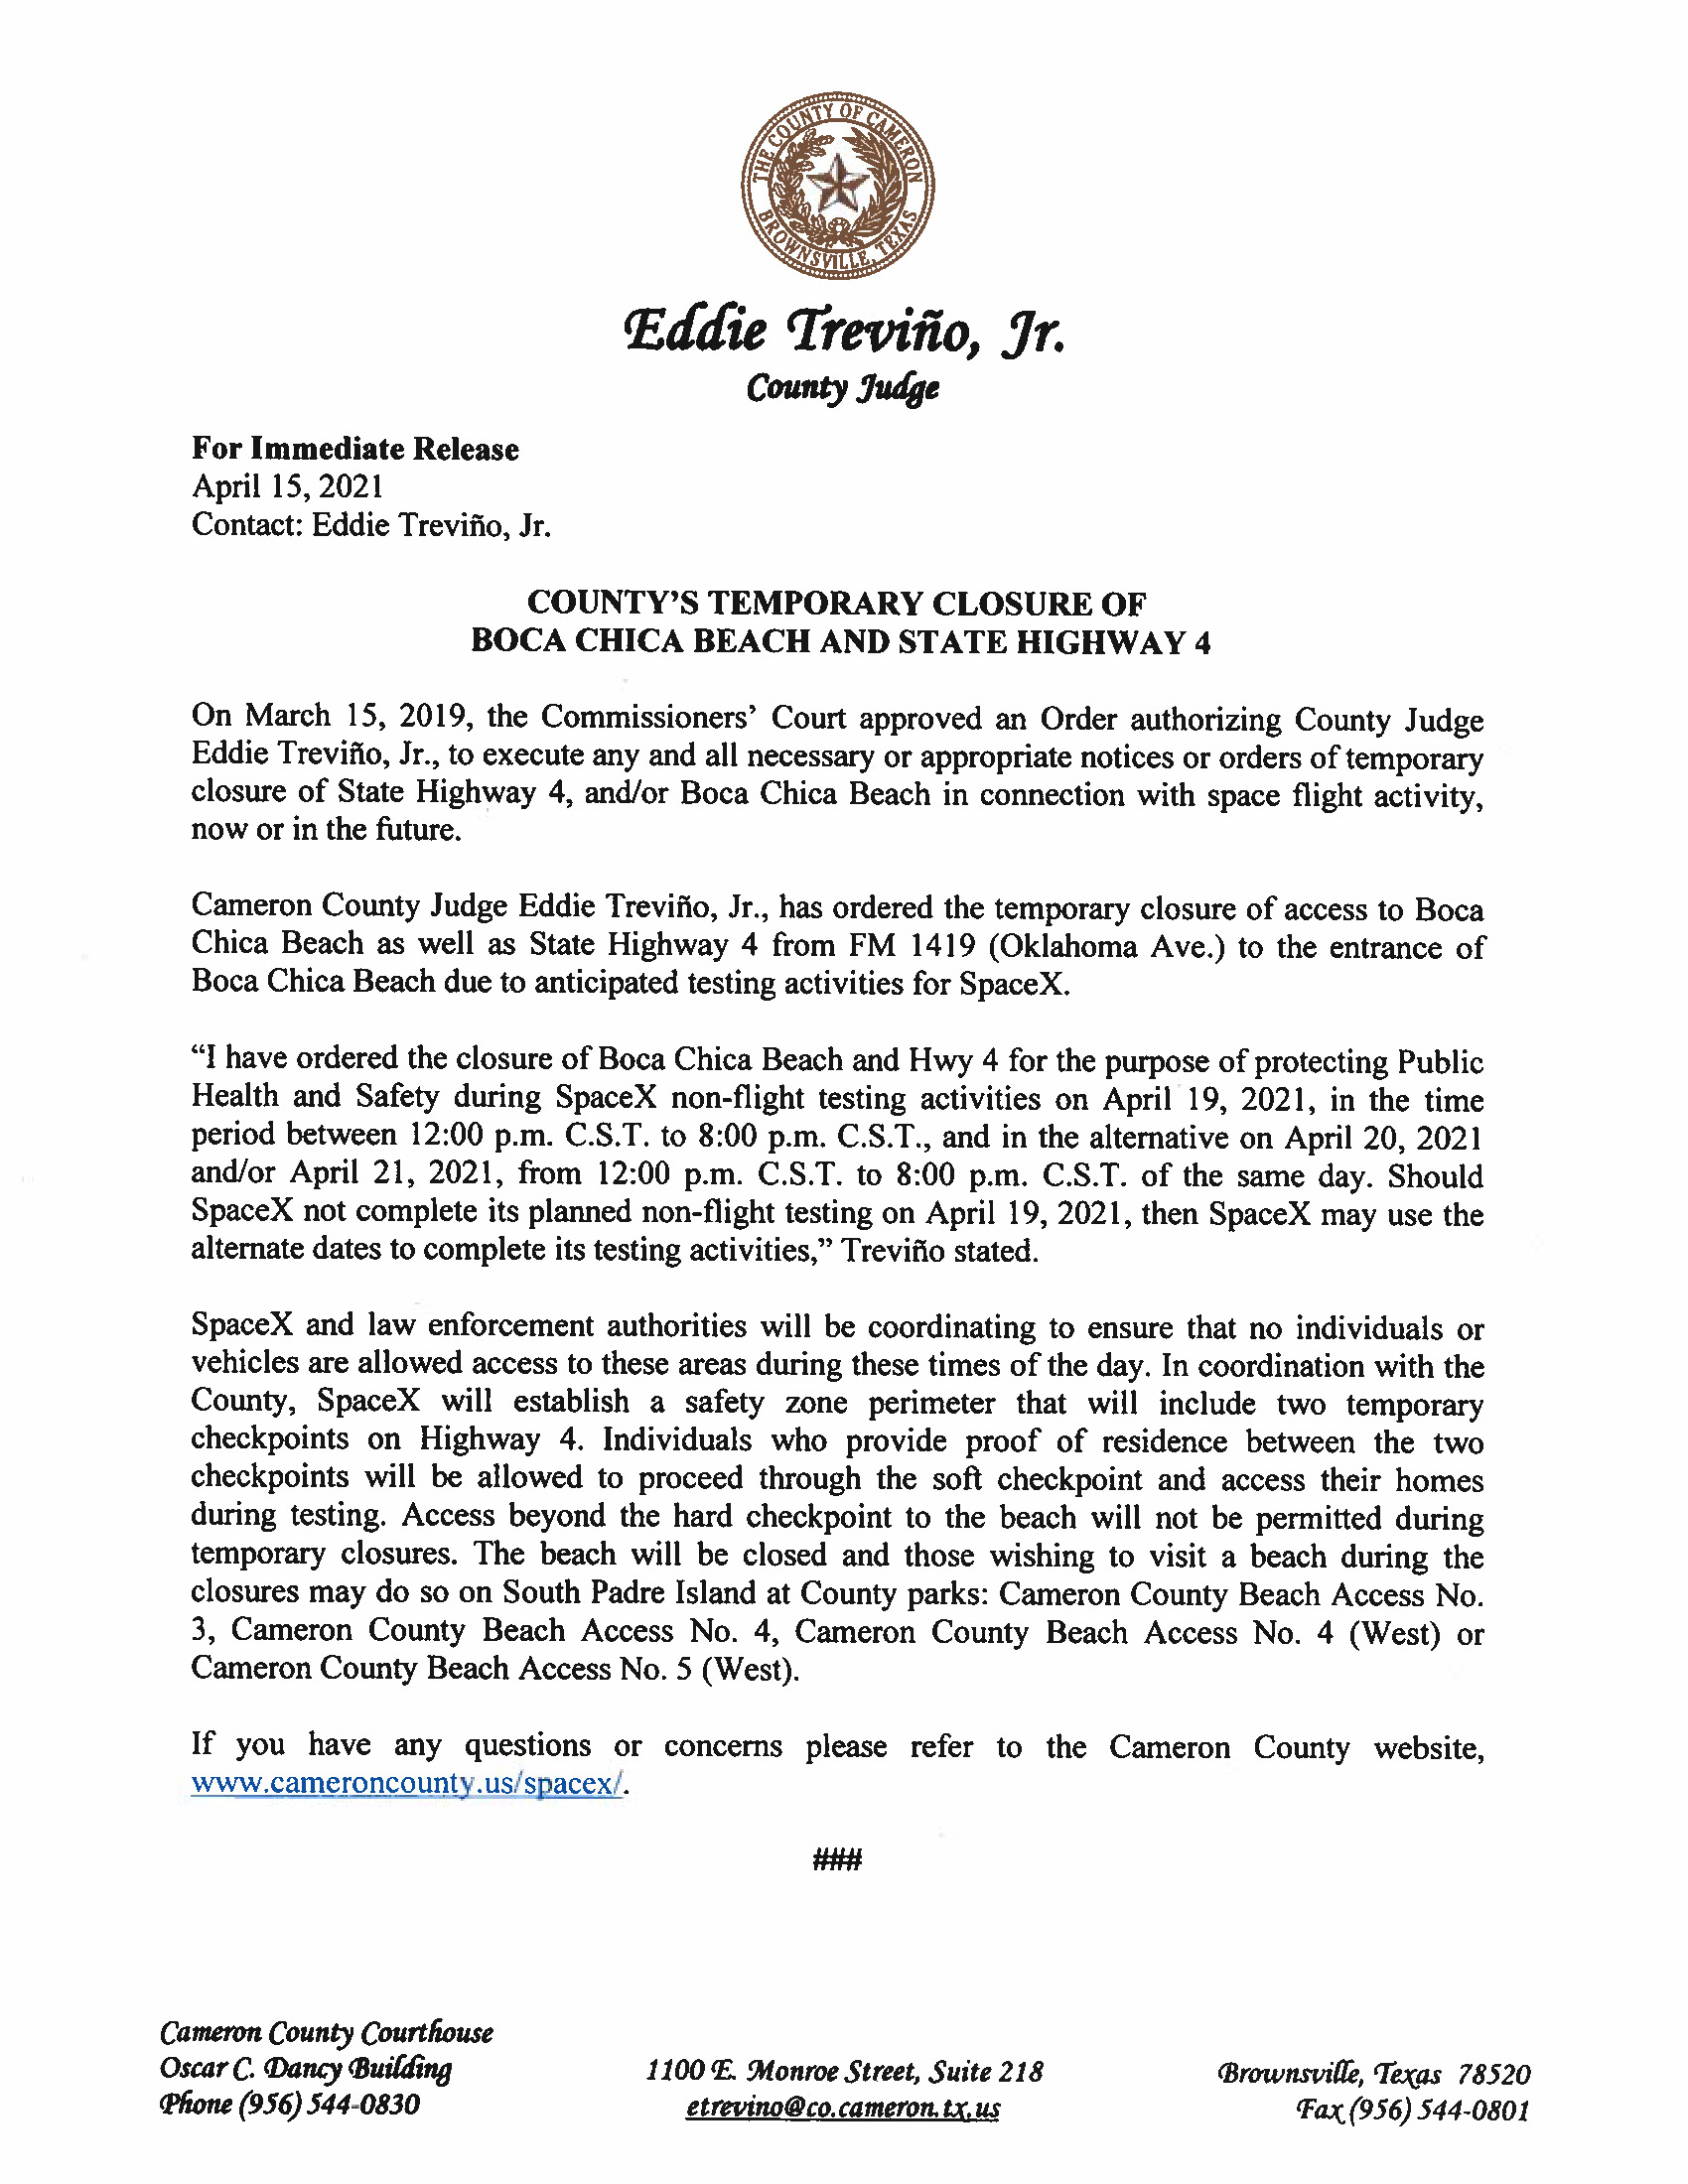 Press Release In English And Spanish.04.19.2021 Page 1